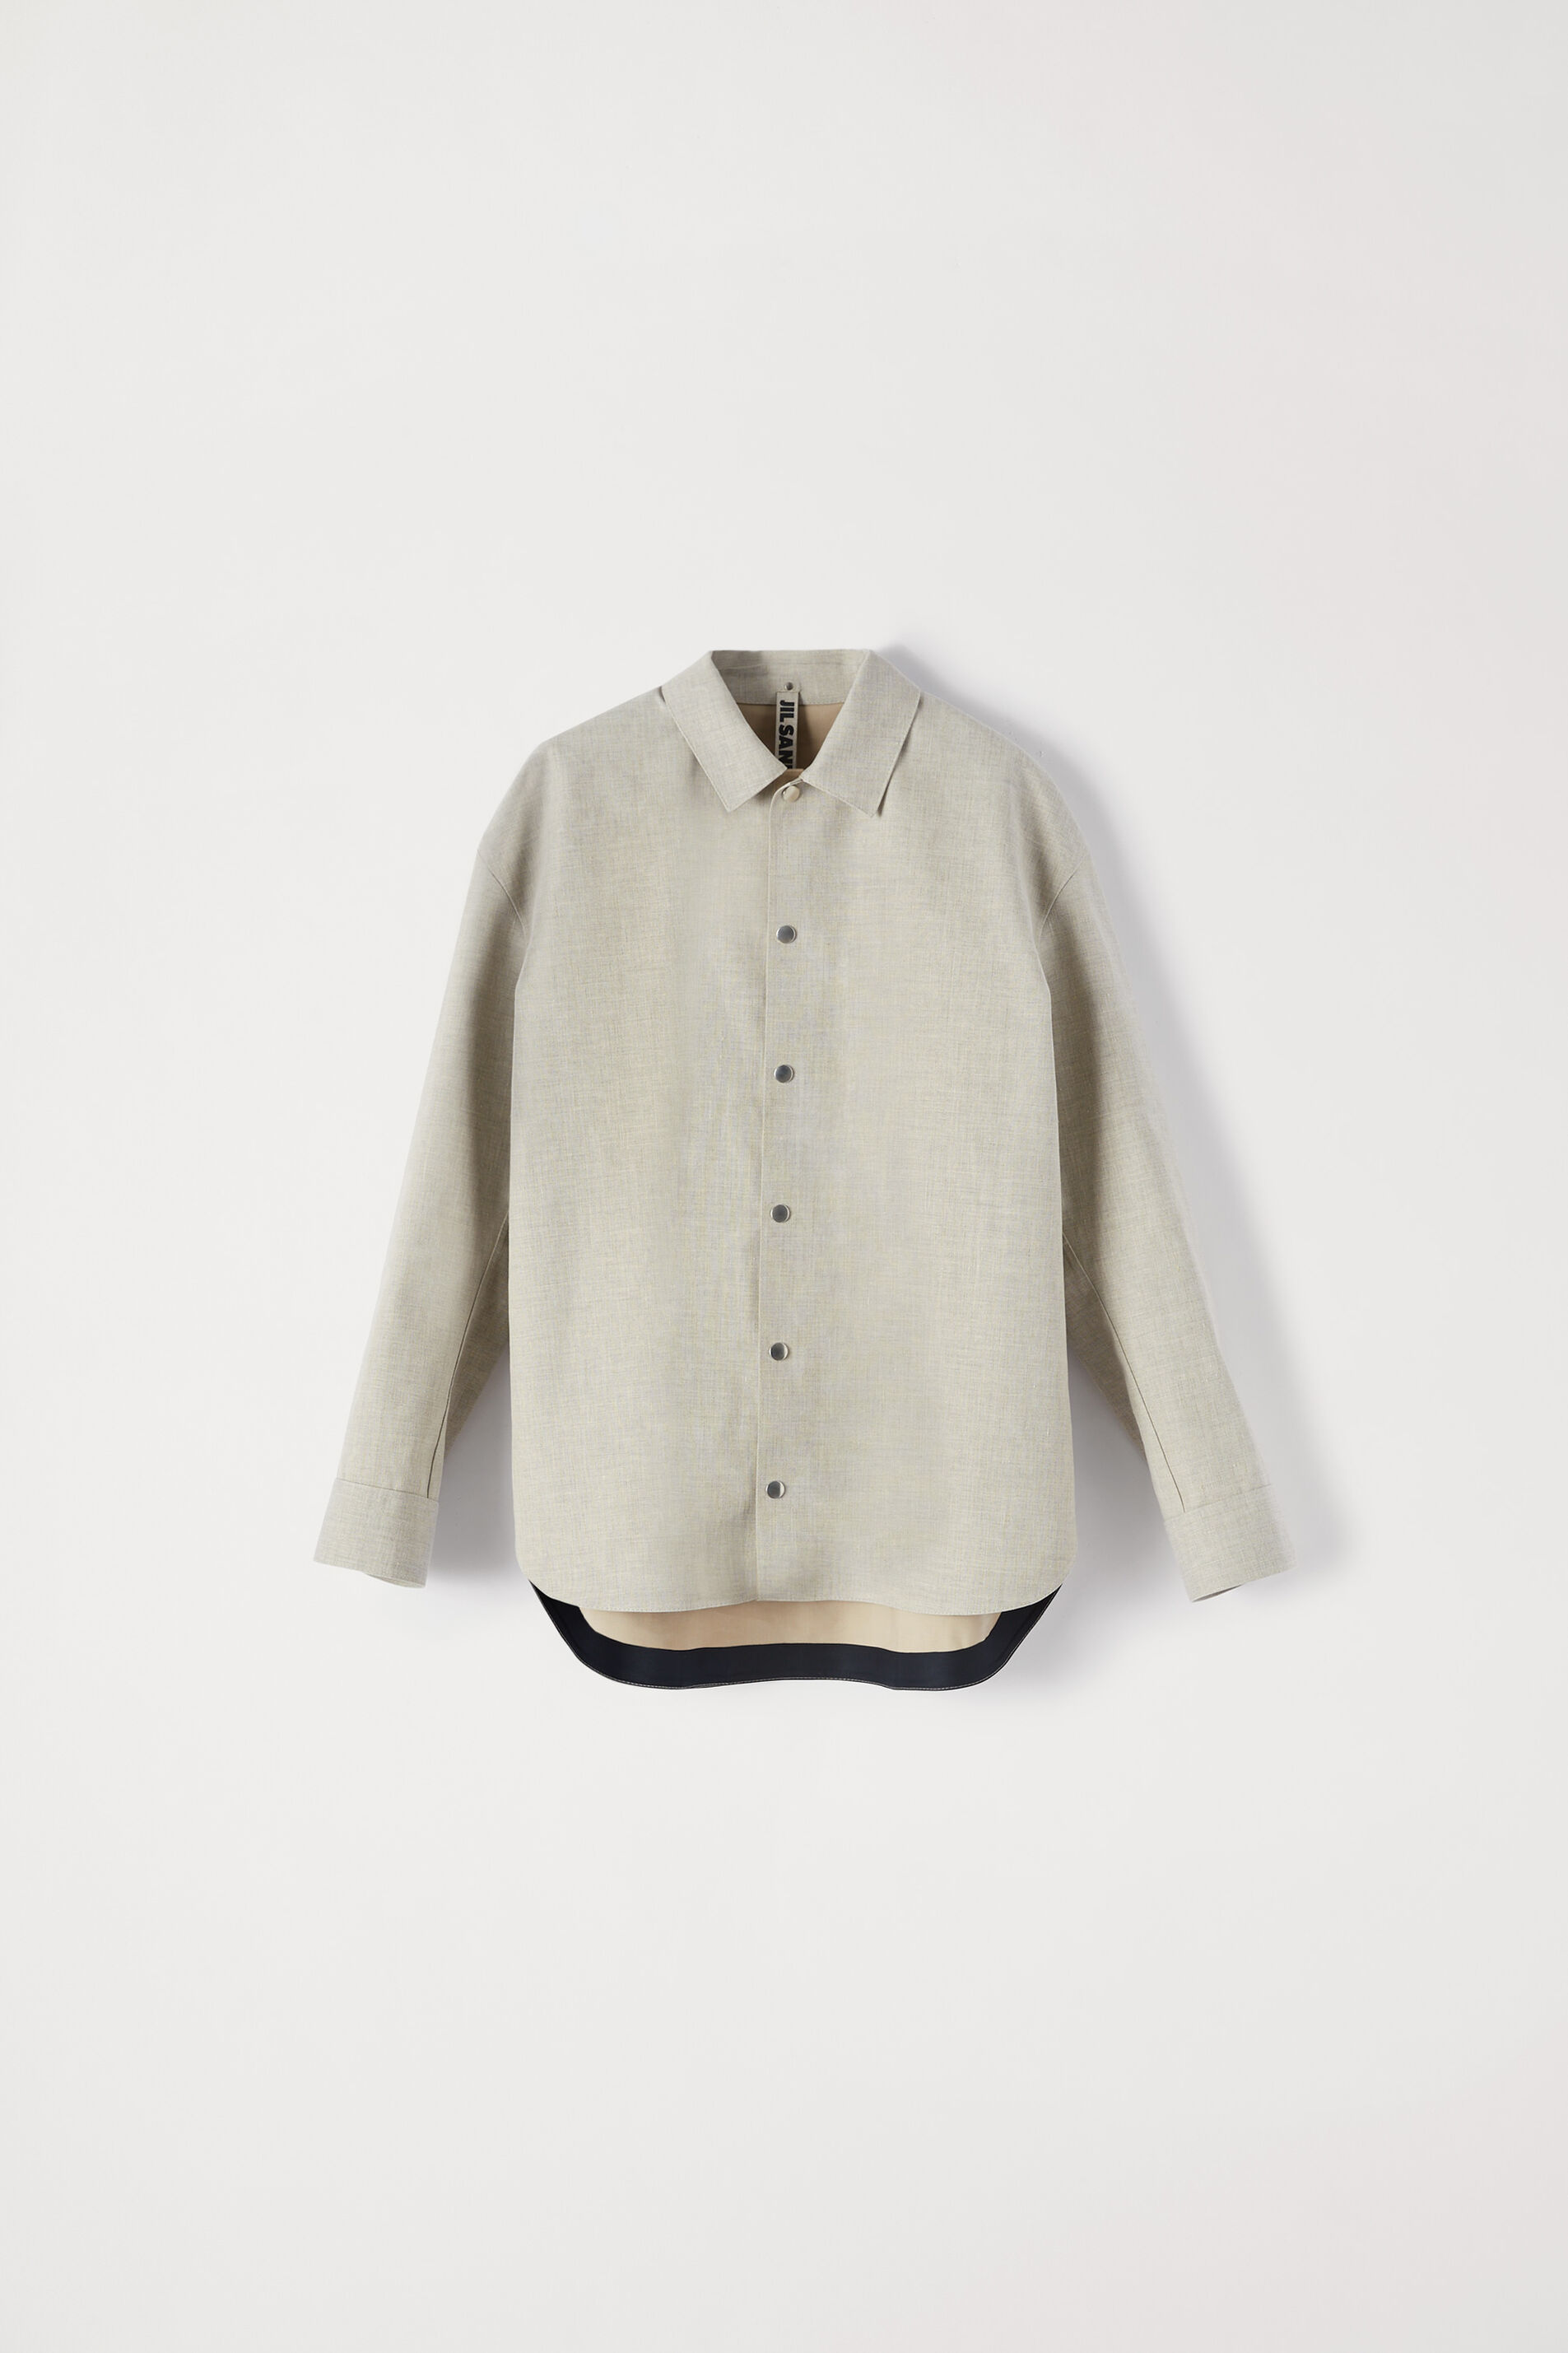 Shirt Jacket, pastel grey, large